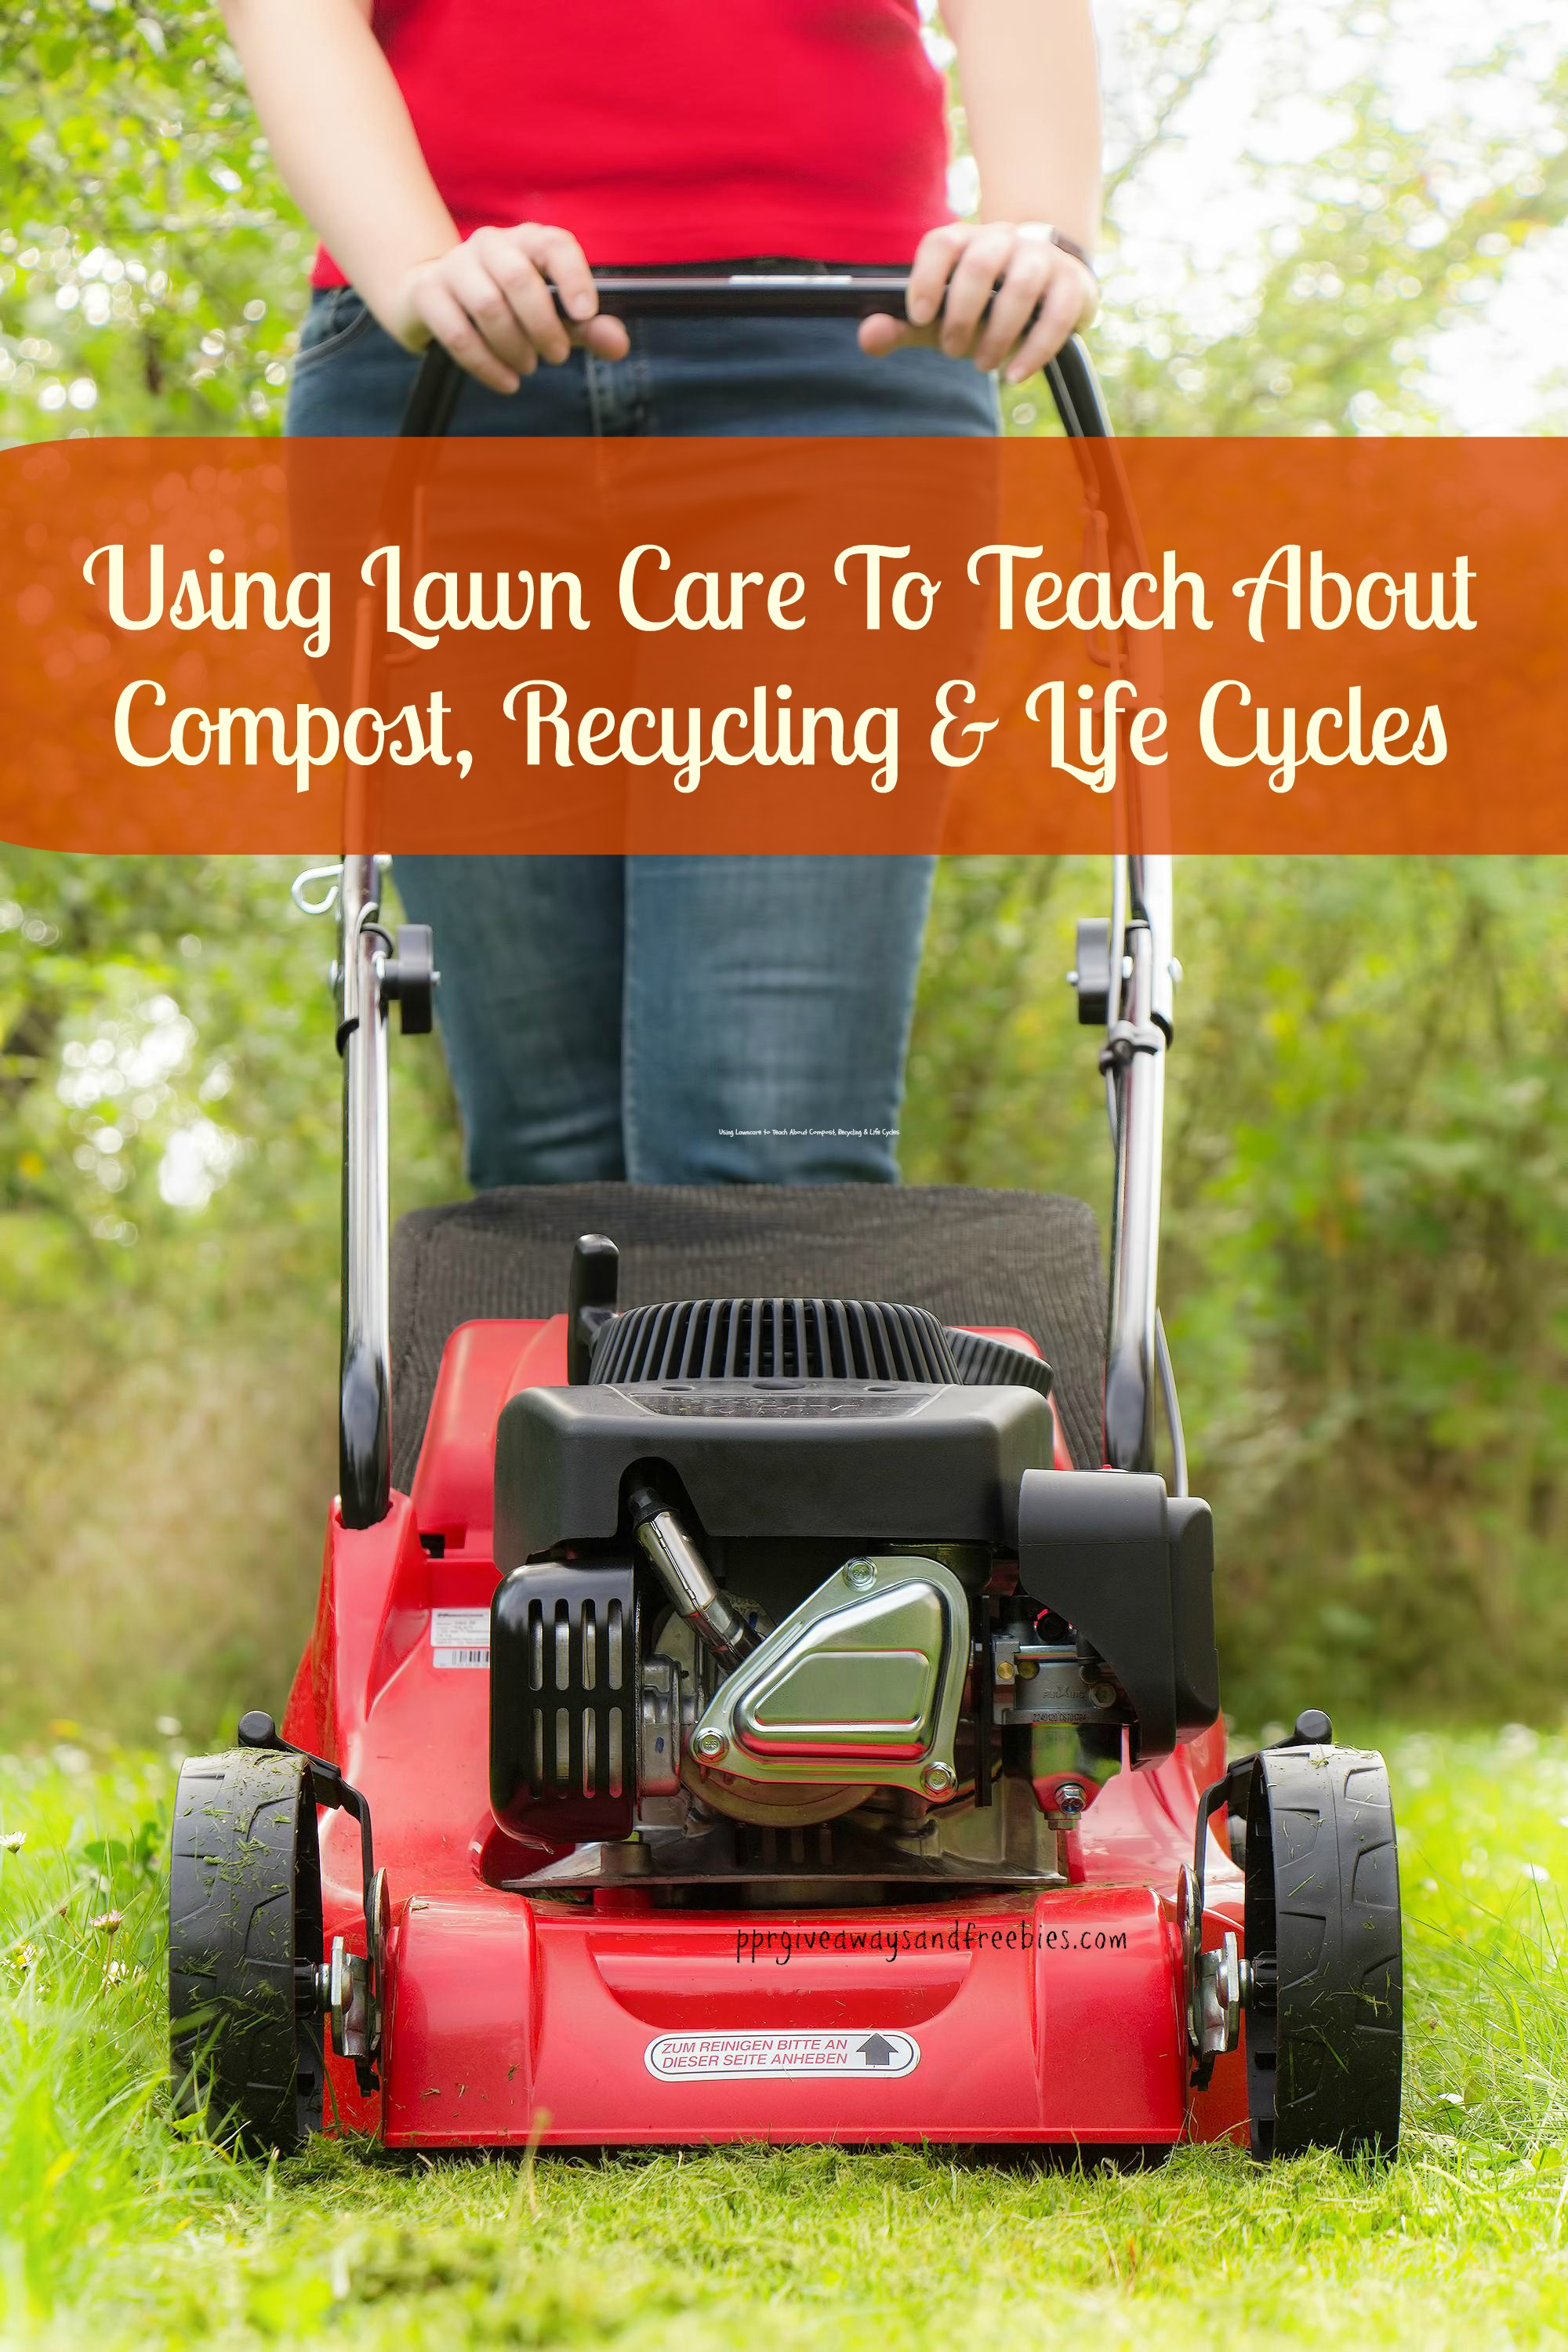 Using Lawn Care To Teach About Compost, Recycling & Life Cycles